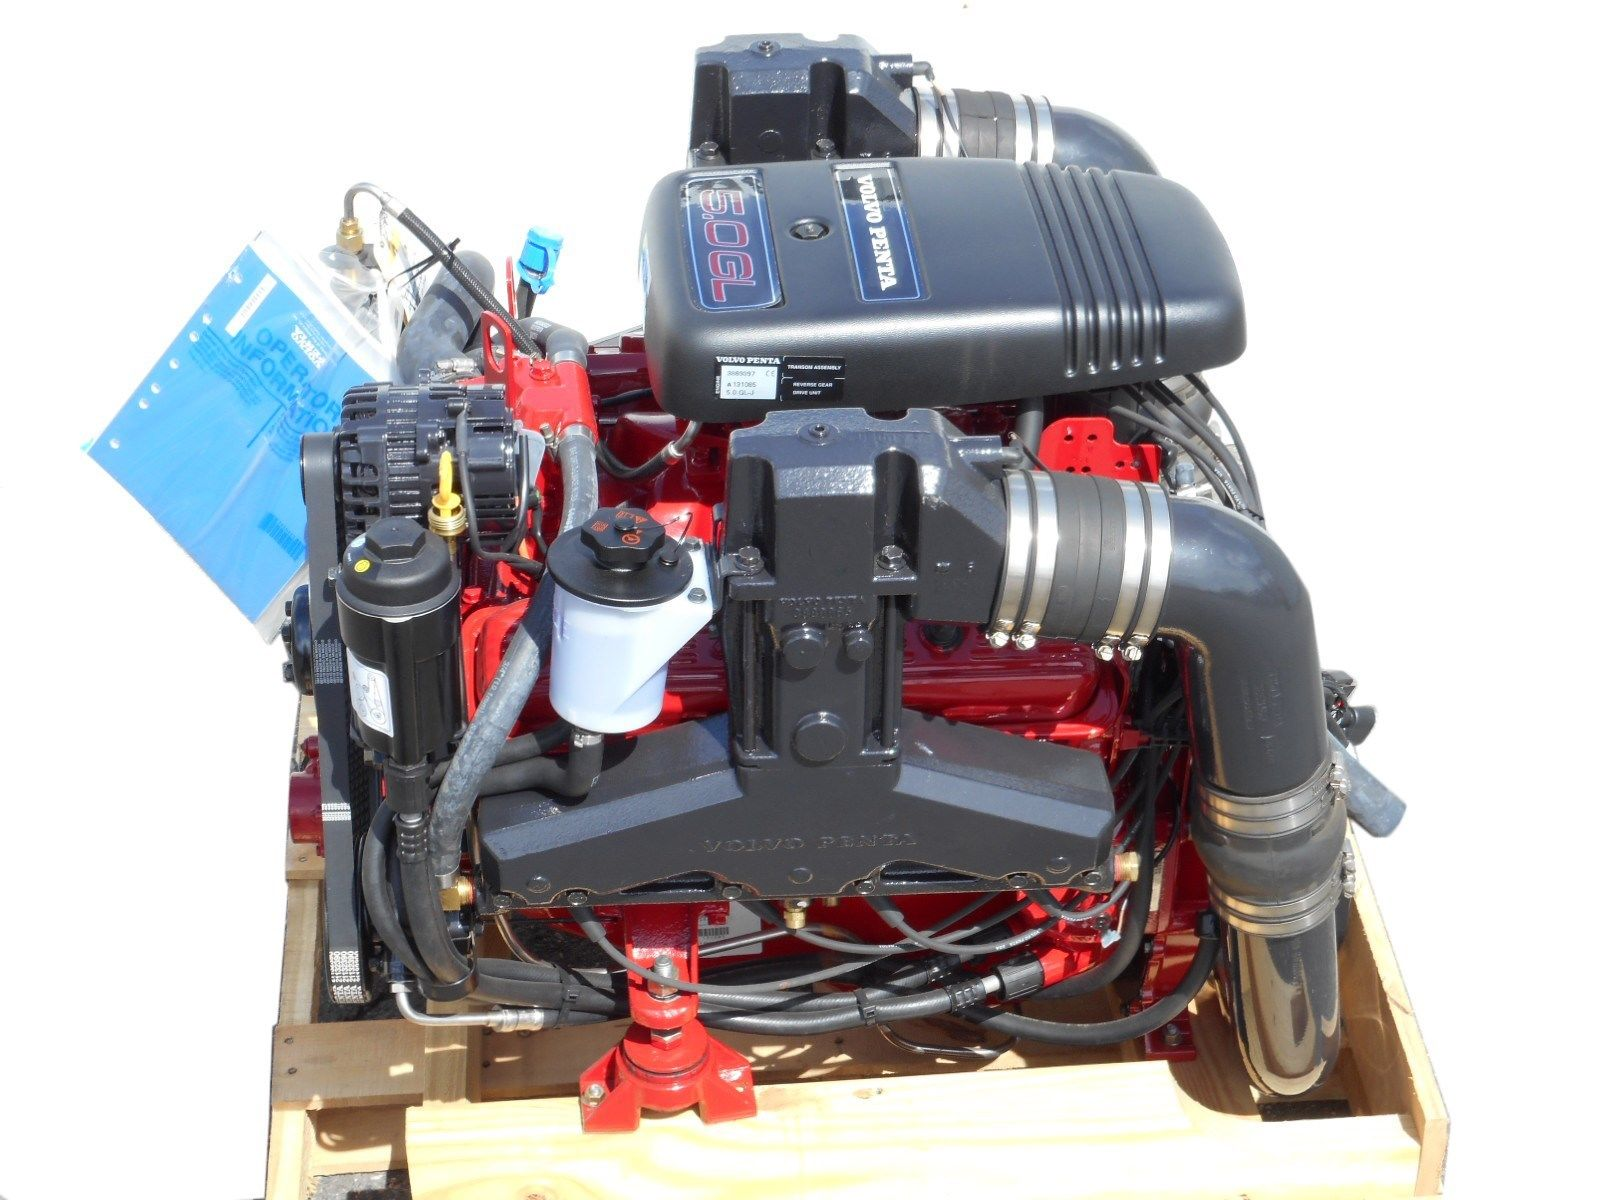 volvo penta 5 0gl complete boat marine motor 220hp 305 5. Black Bedroom Furniture Sets. Home Design Ideas